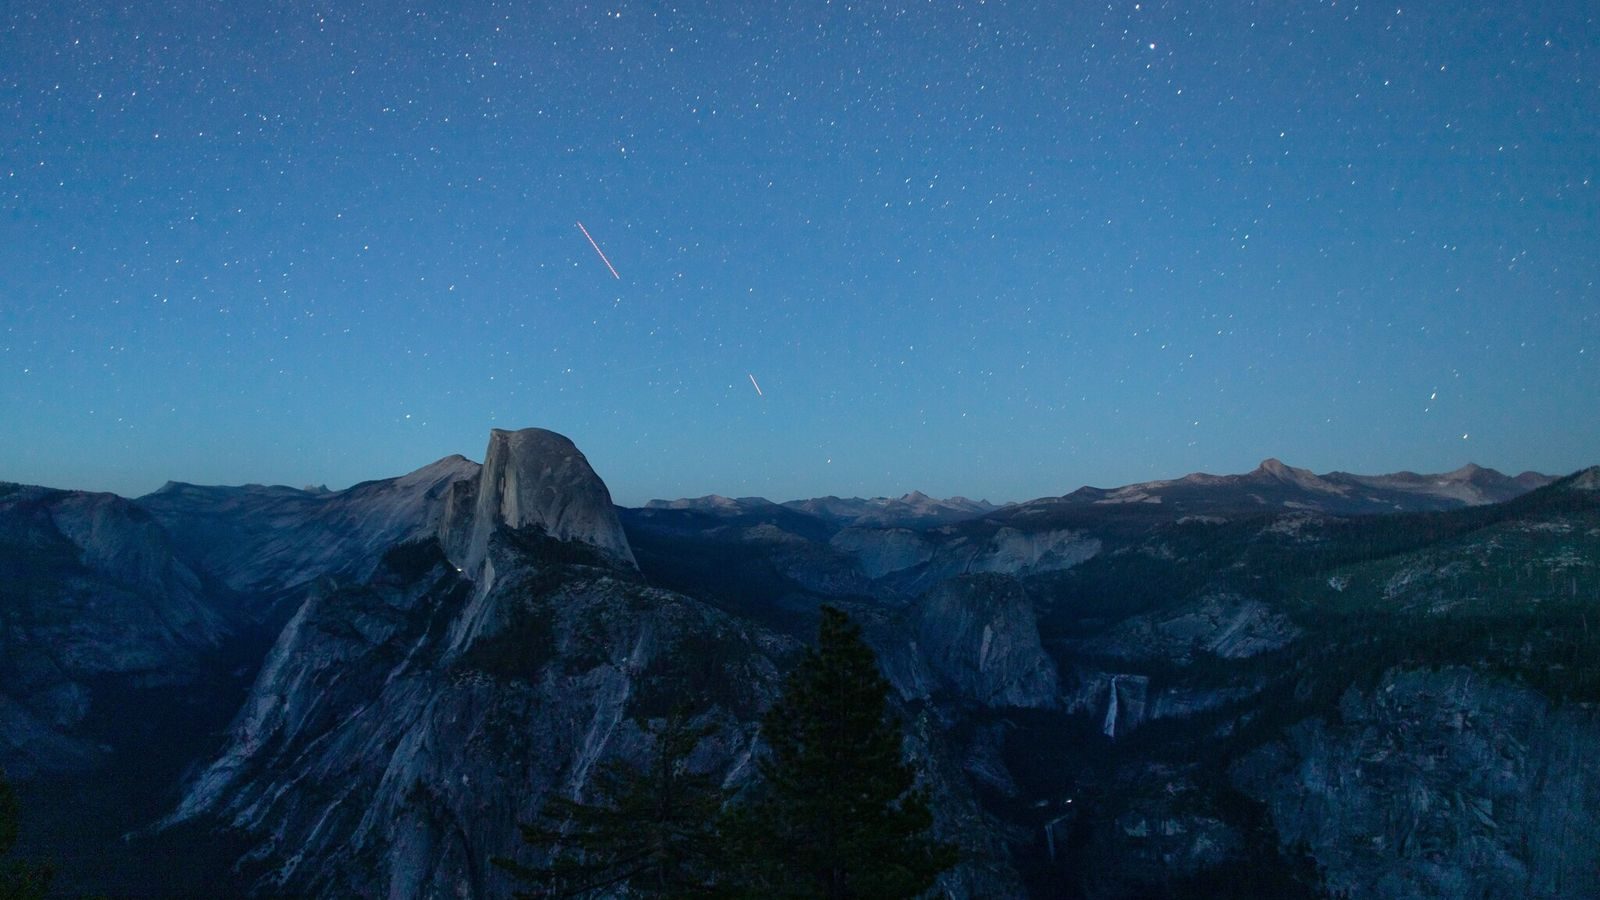 Op 7 juli 2020 valt de schemer over het natuurschoon in Yosemite Valley, waaronder Half Dome ...